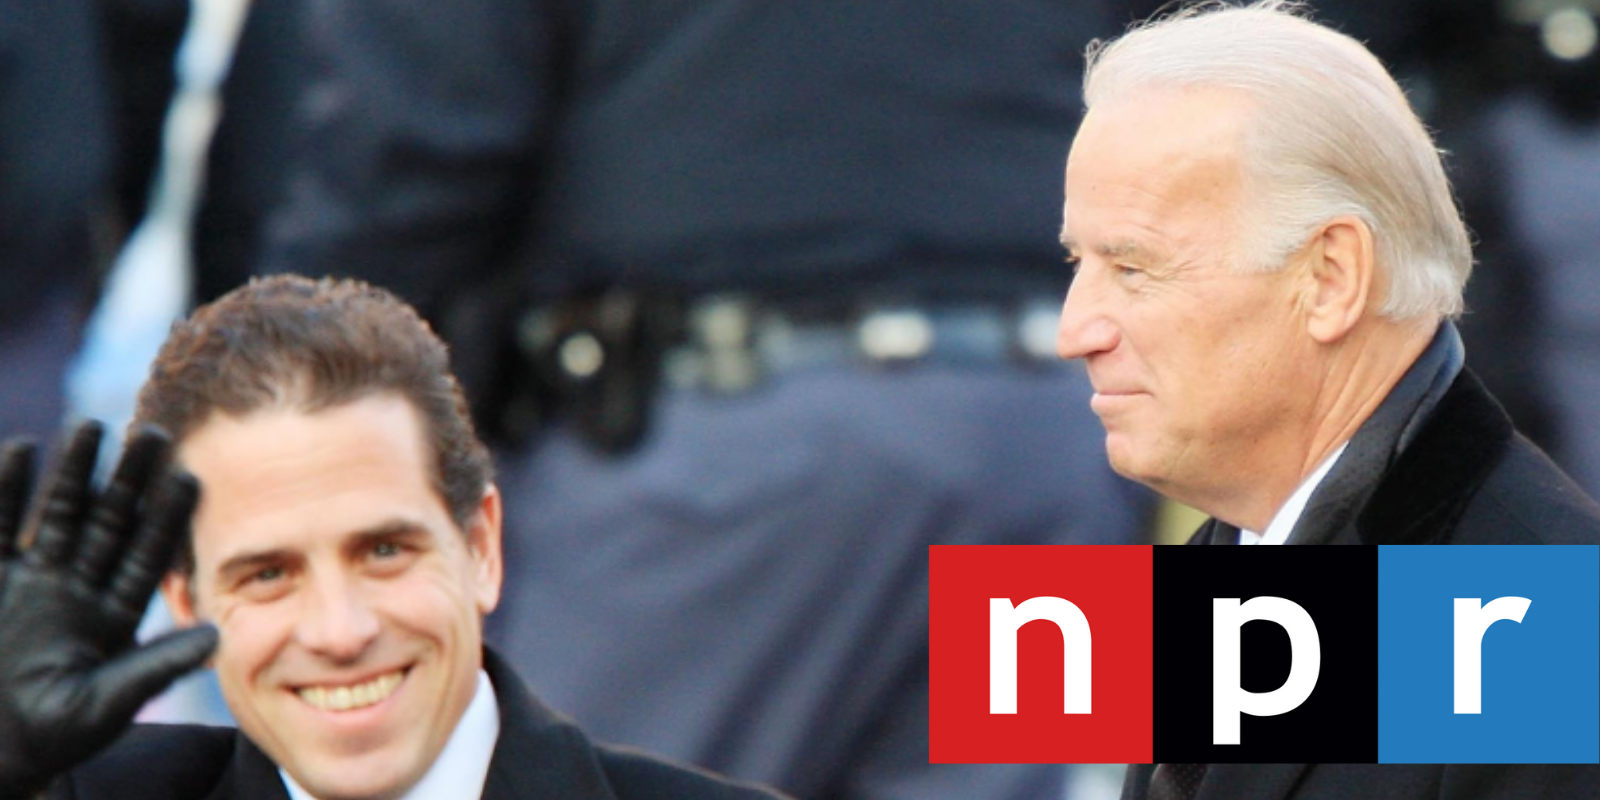 State-funded NPR refuses to cover Hunter Biden story, calling it a 'waste of time'